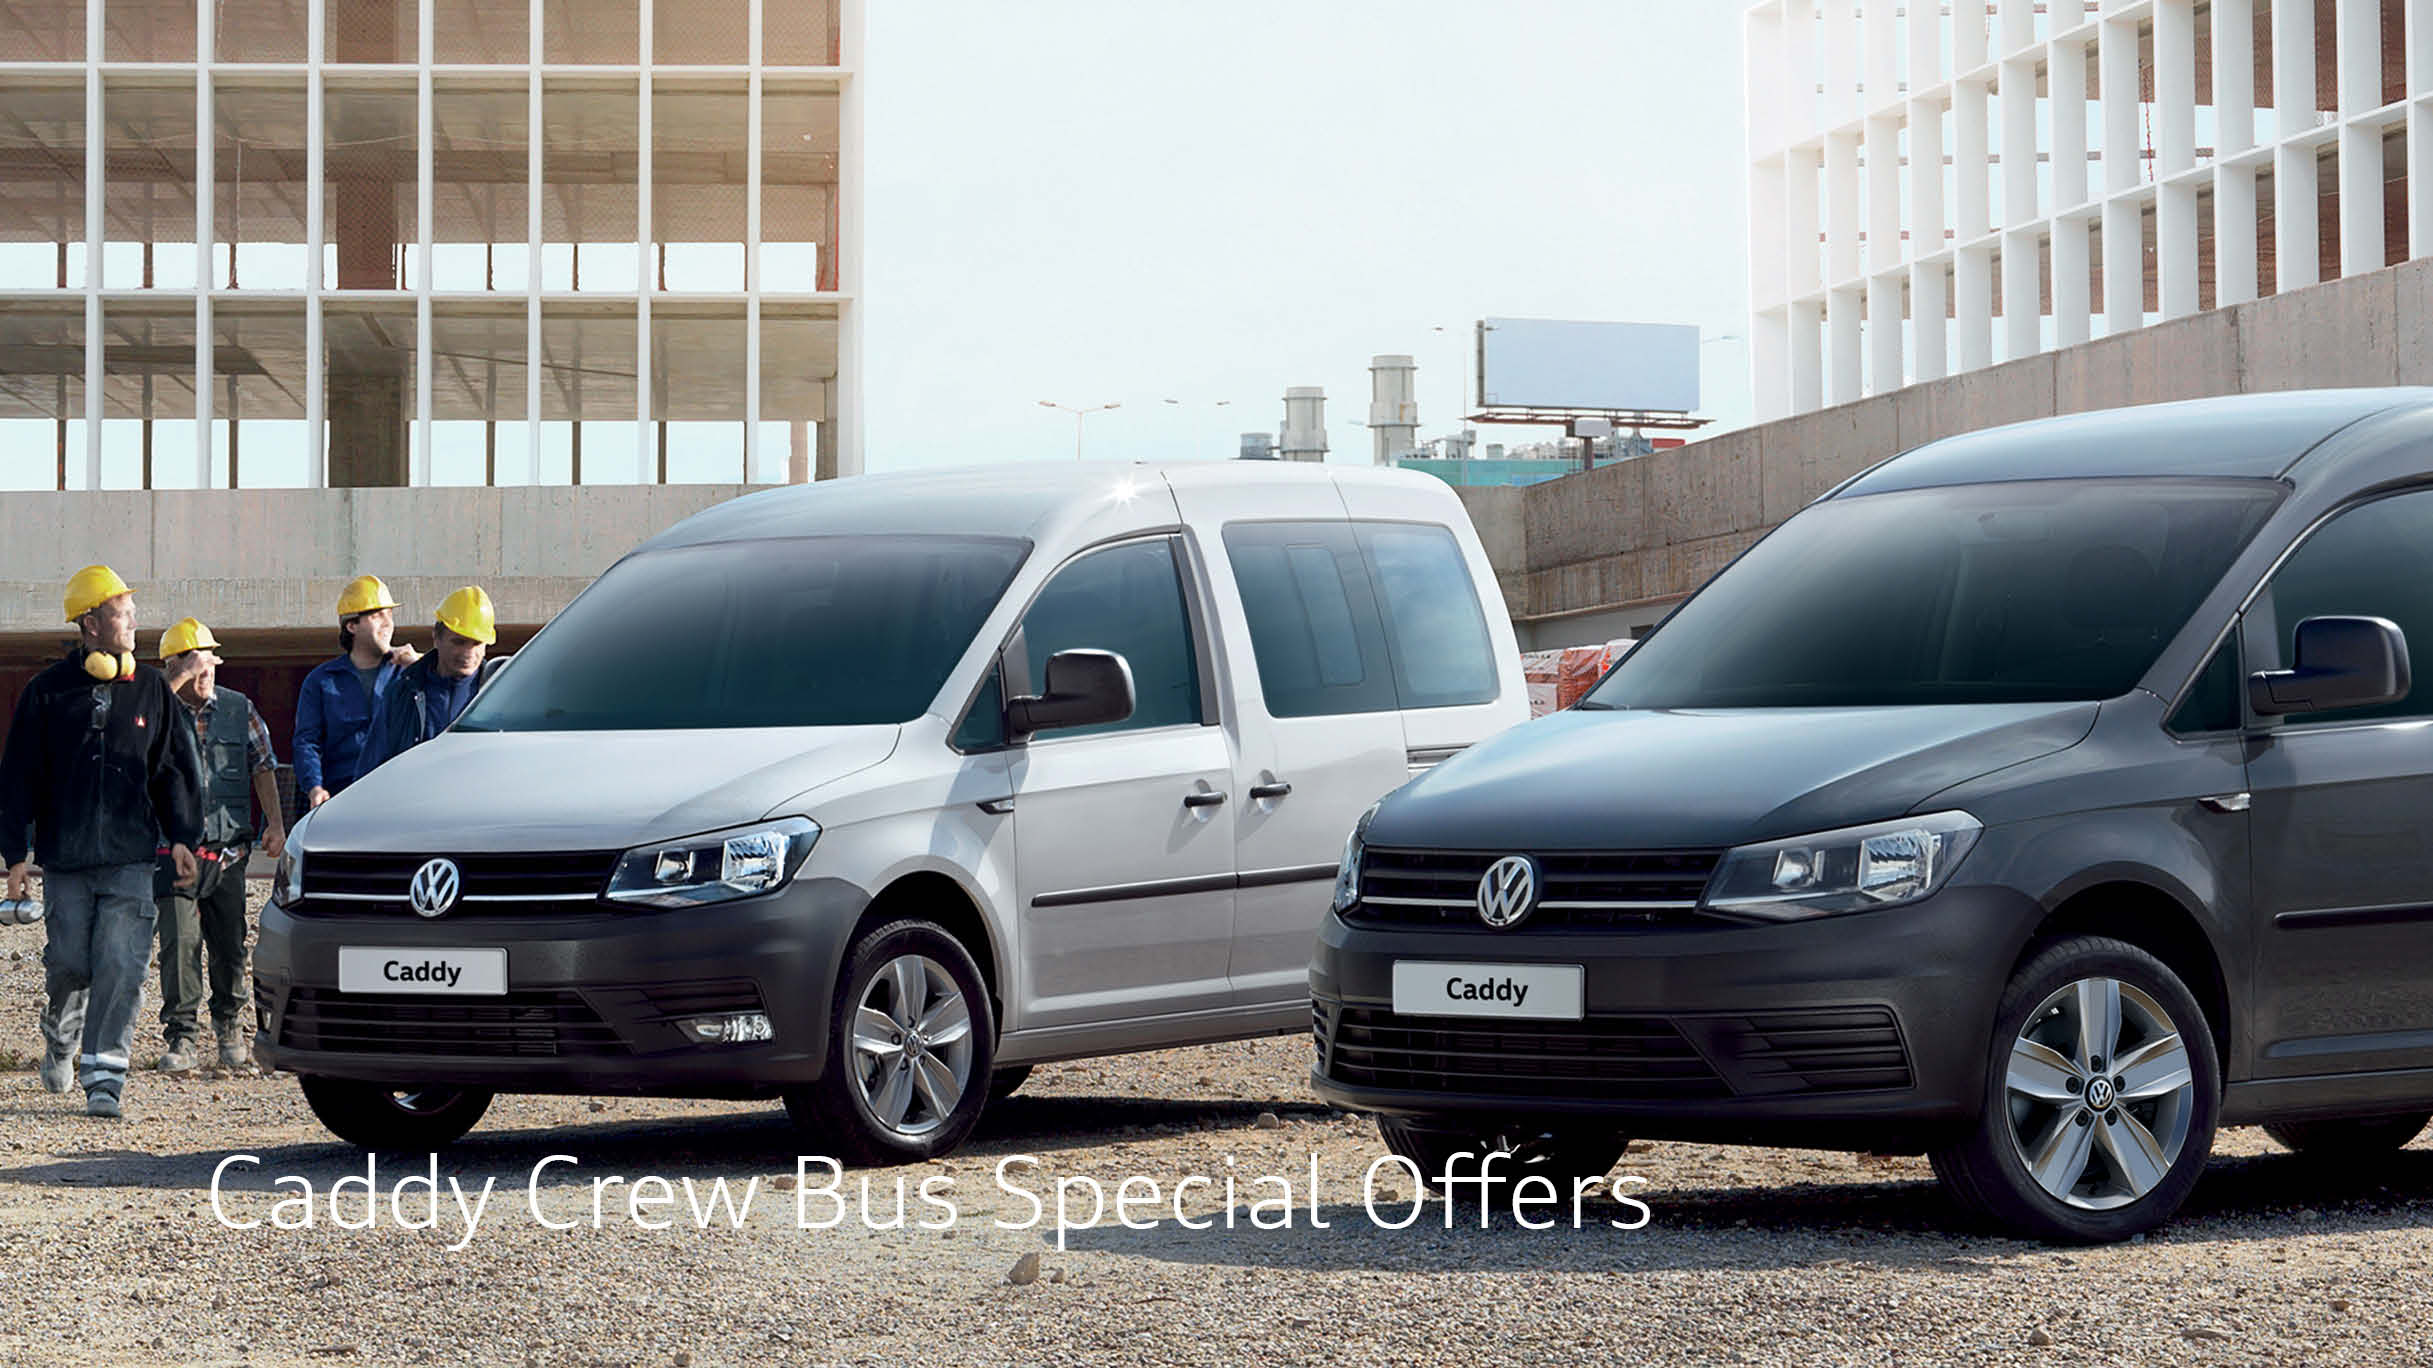 VW SA Caddy offers